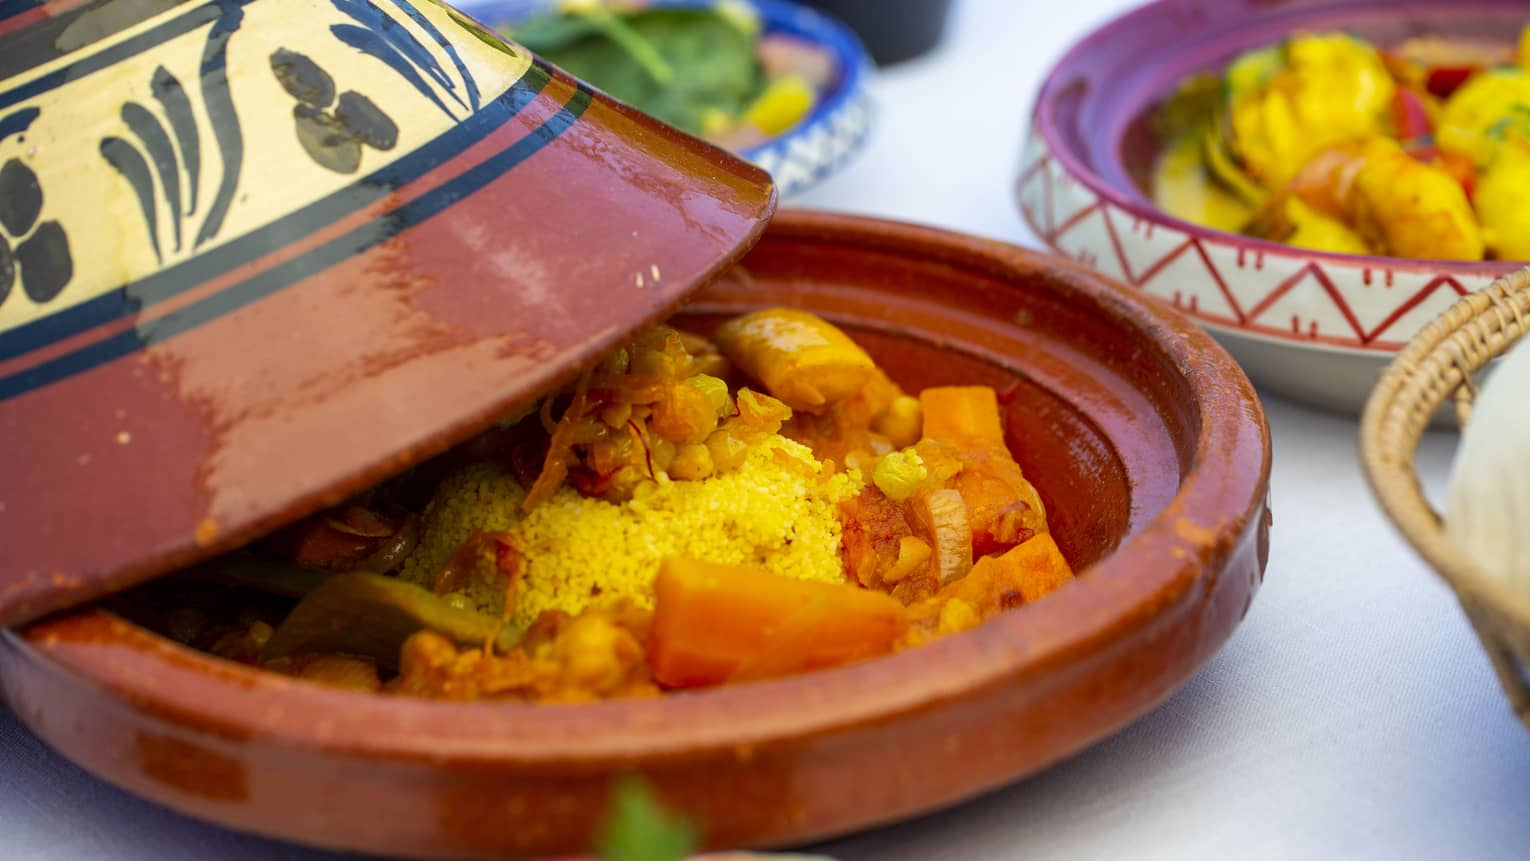 A close up of a vegetable dish in a terracotta plate with cover at Al Barakat